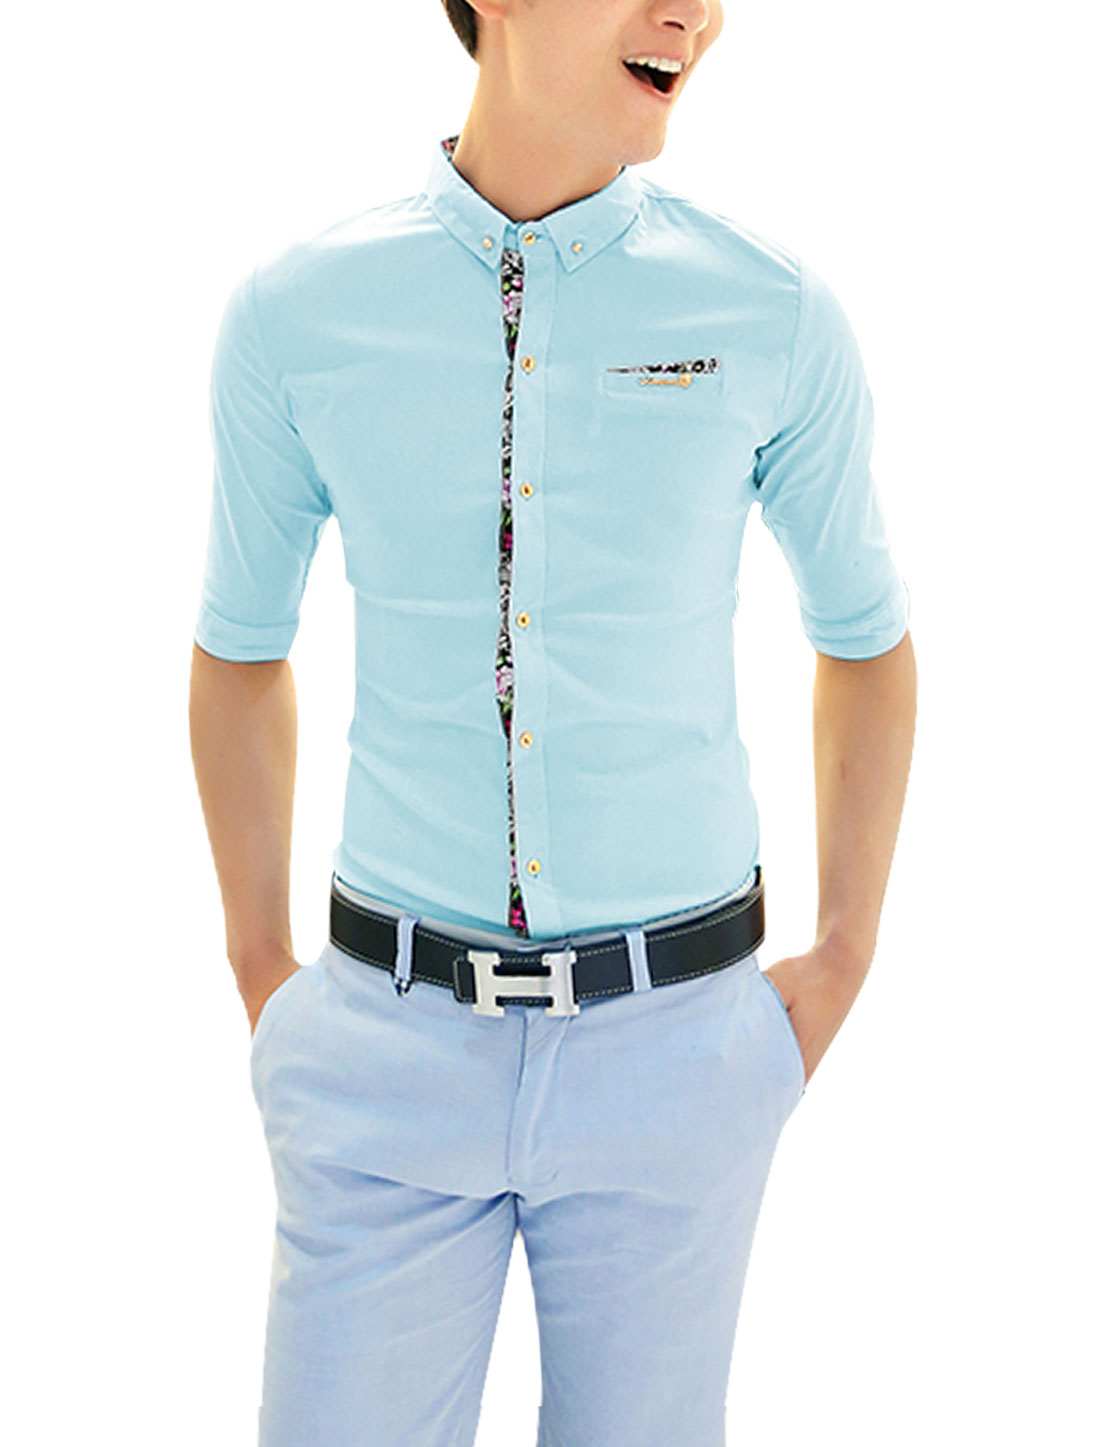 Men Point Collar Mock Breast Pocket Fashion Button Down Shirt Light Blue S